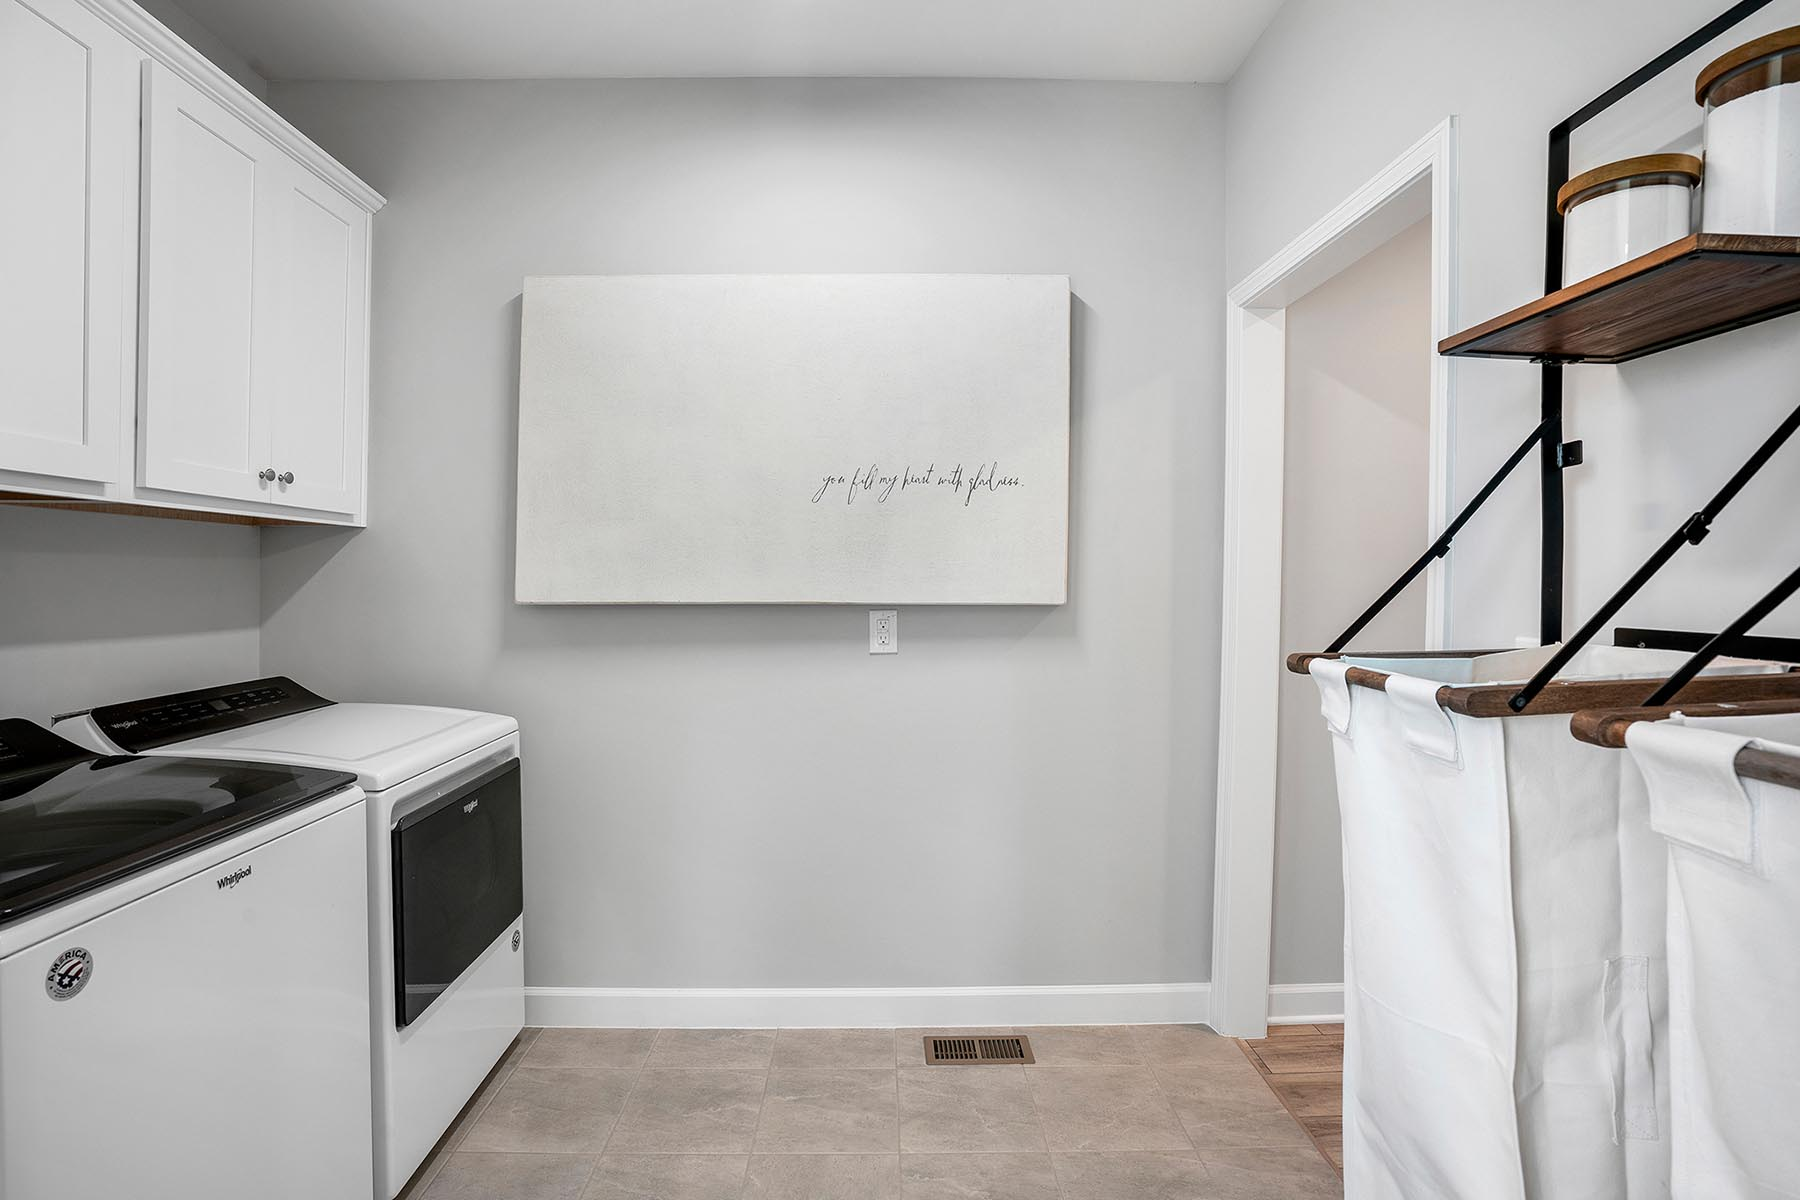 Larkin Plan Laundry at Portofino in Clayton North Carolina by Mattamy Homes